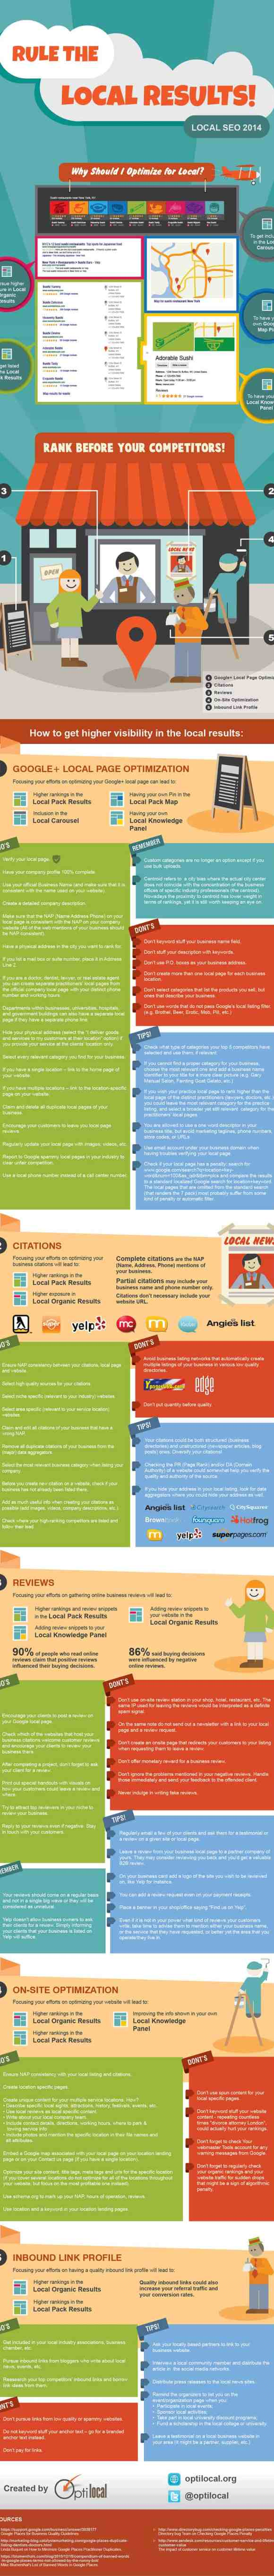 Local SEO tips infographic Seafoam Media blog